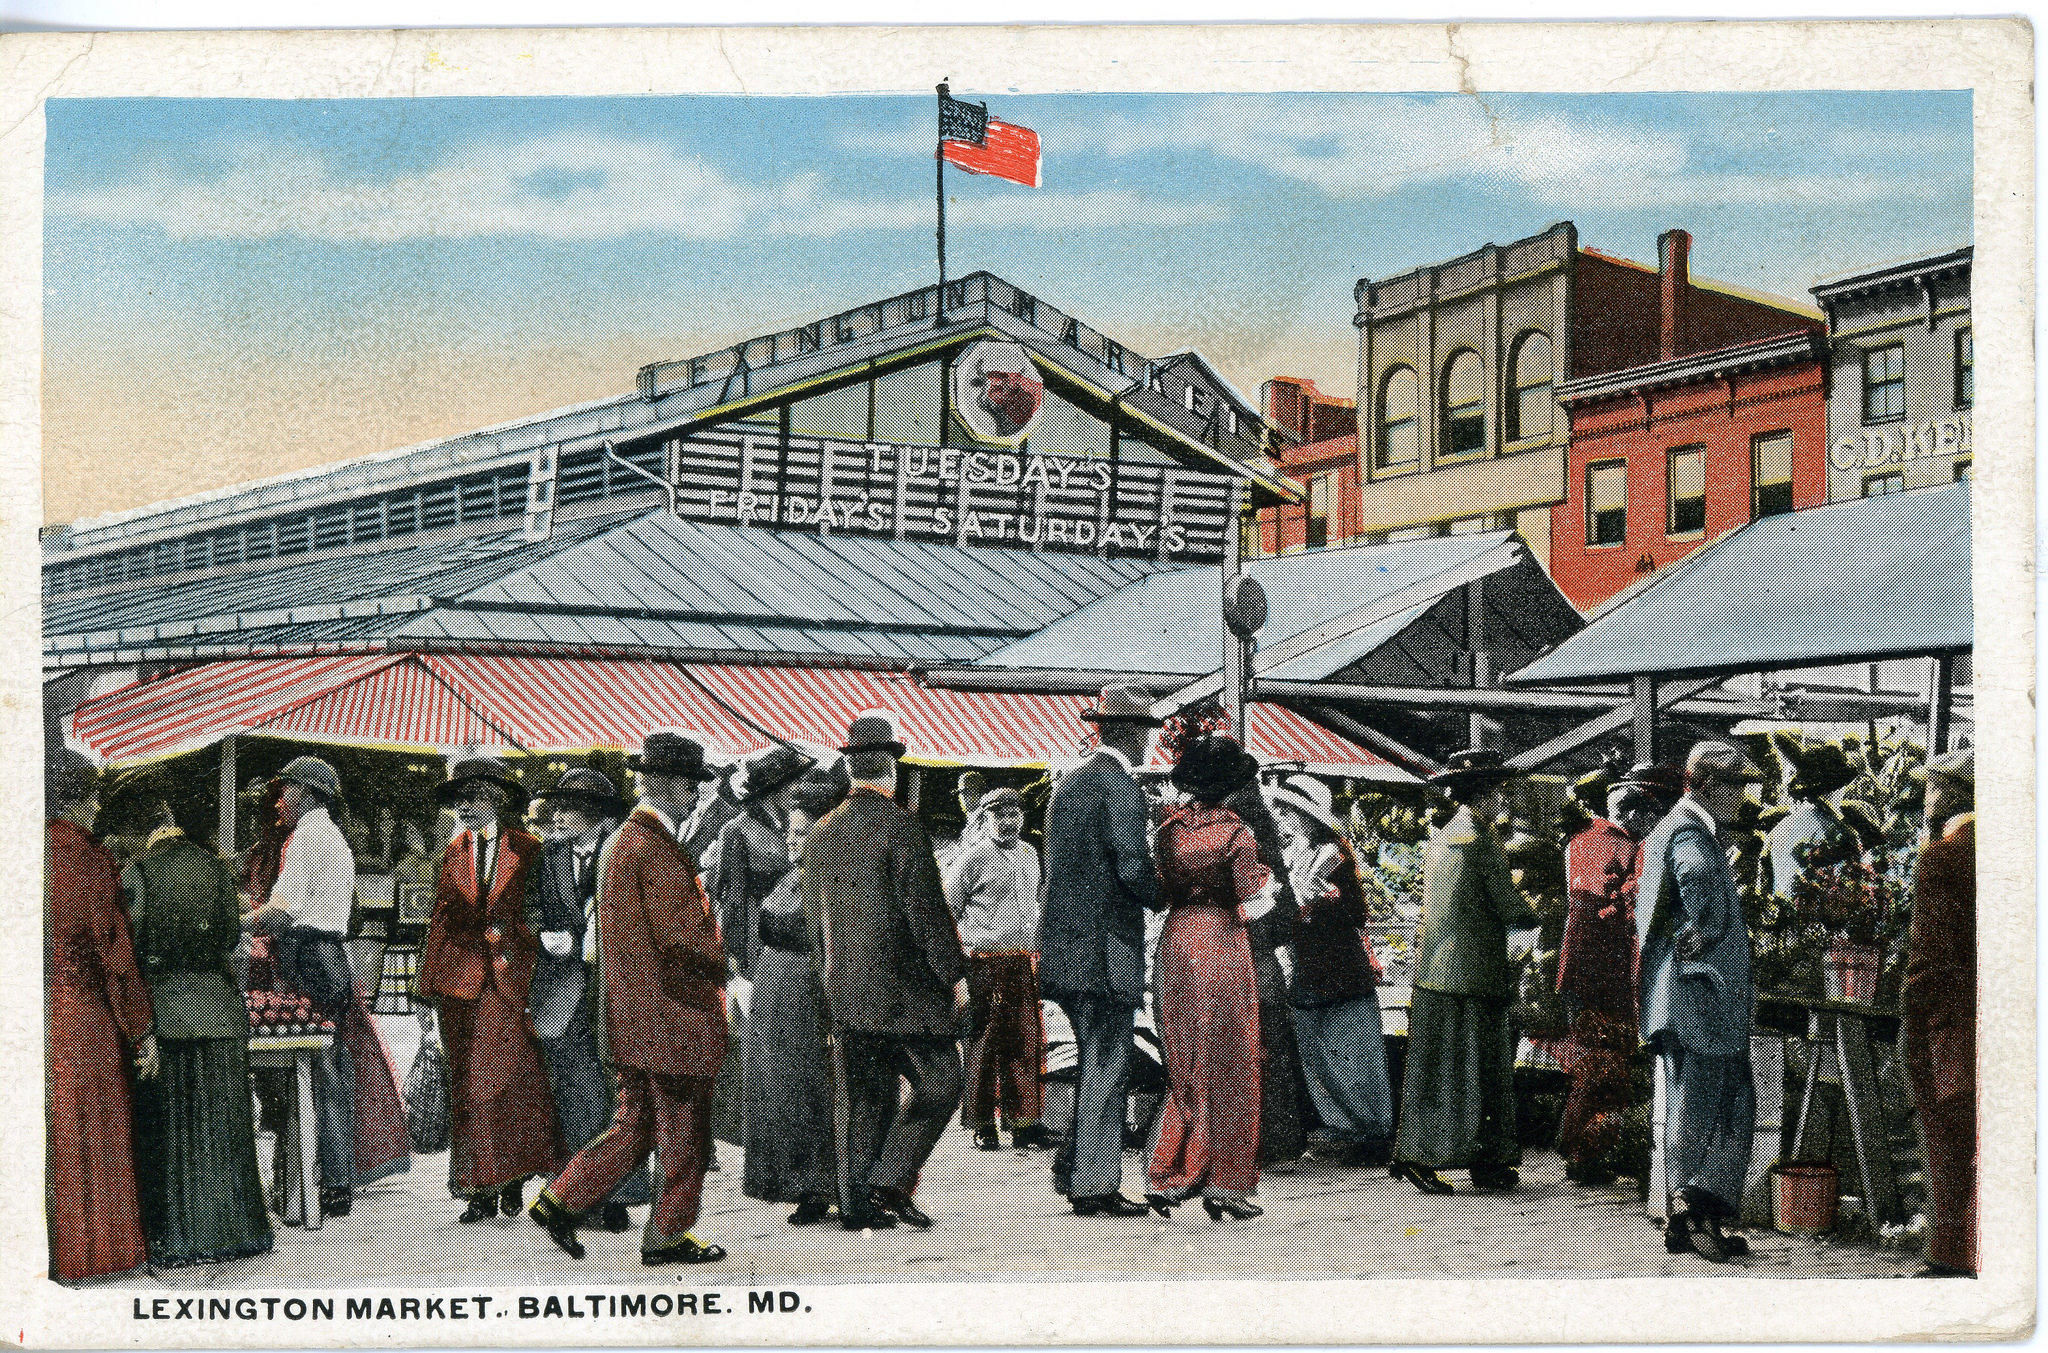 Colorized postcard of people standing around market stalls in front of the Lexington Market shed building.